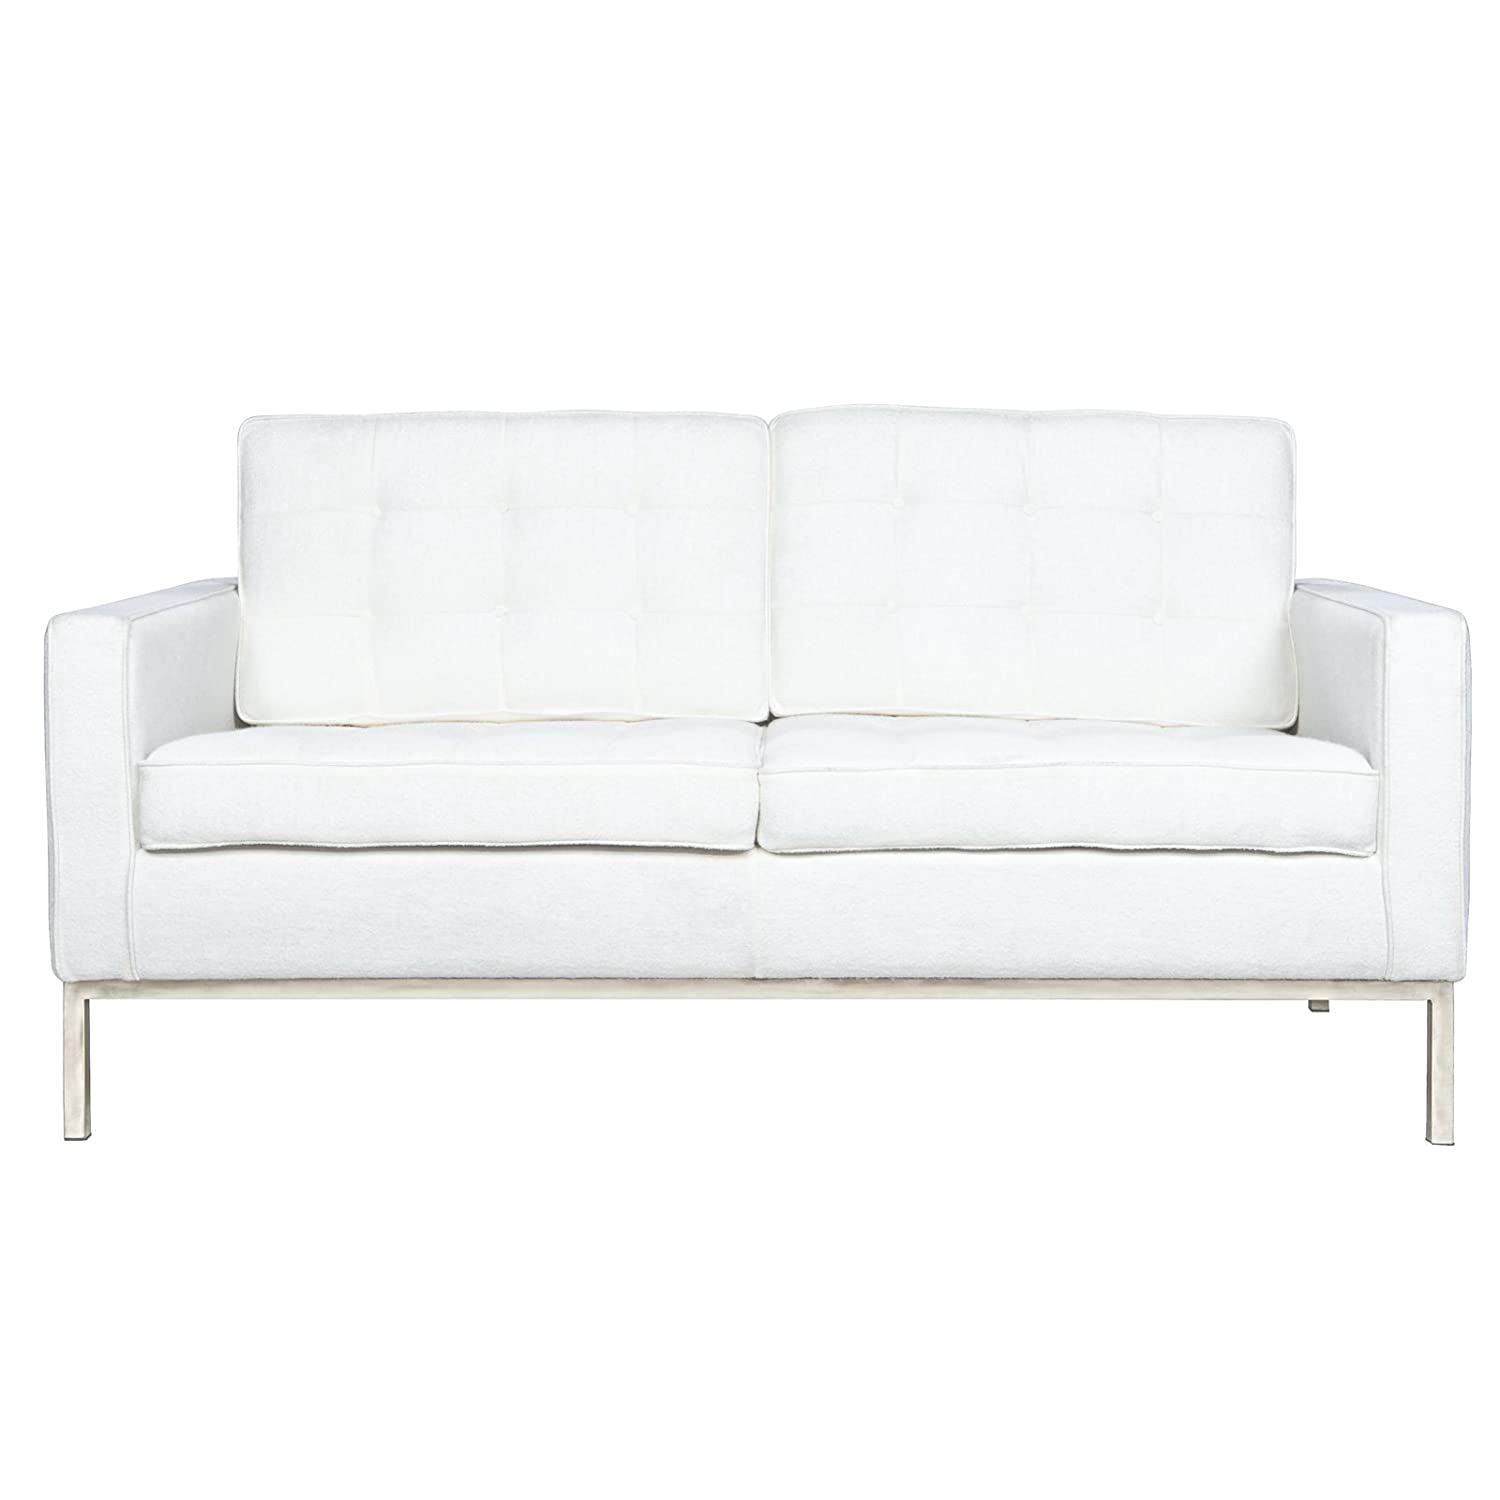 LeisureMod® Modern Florence Style Fabric Loveseat Sofa in White Wool